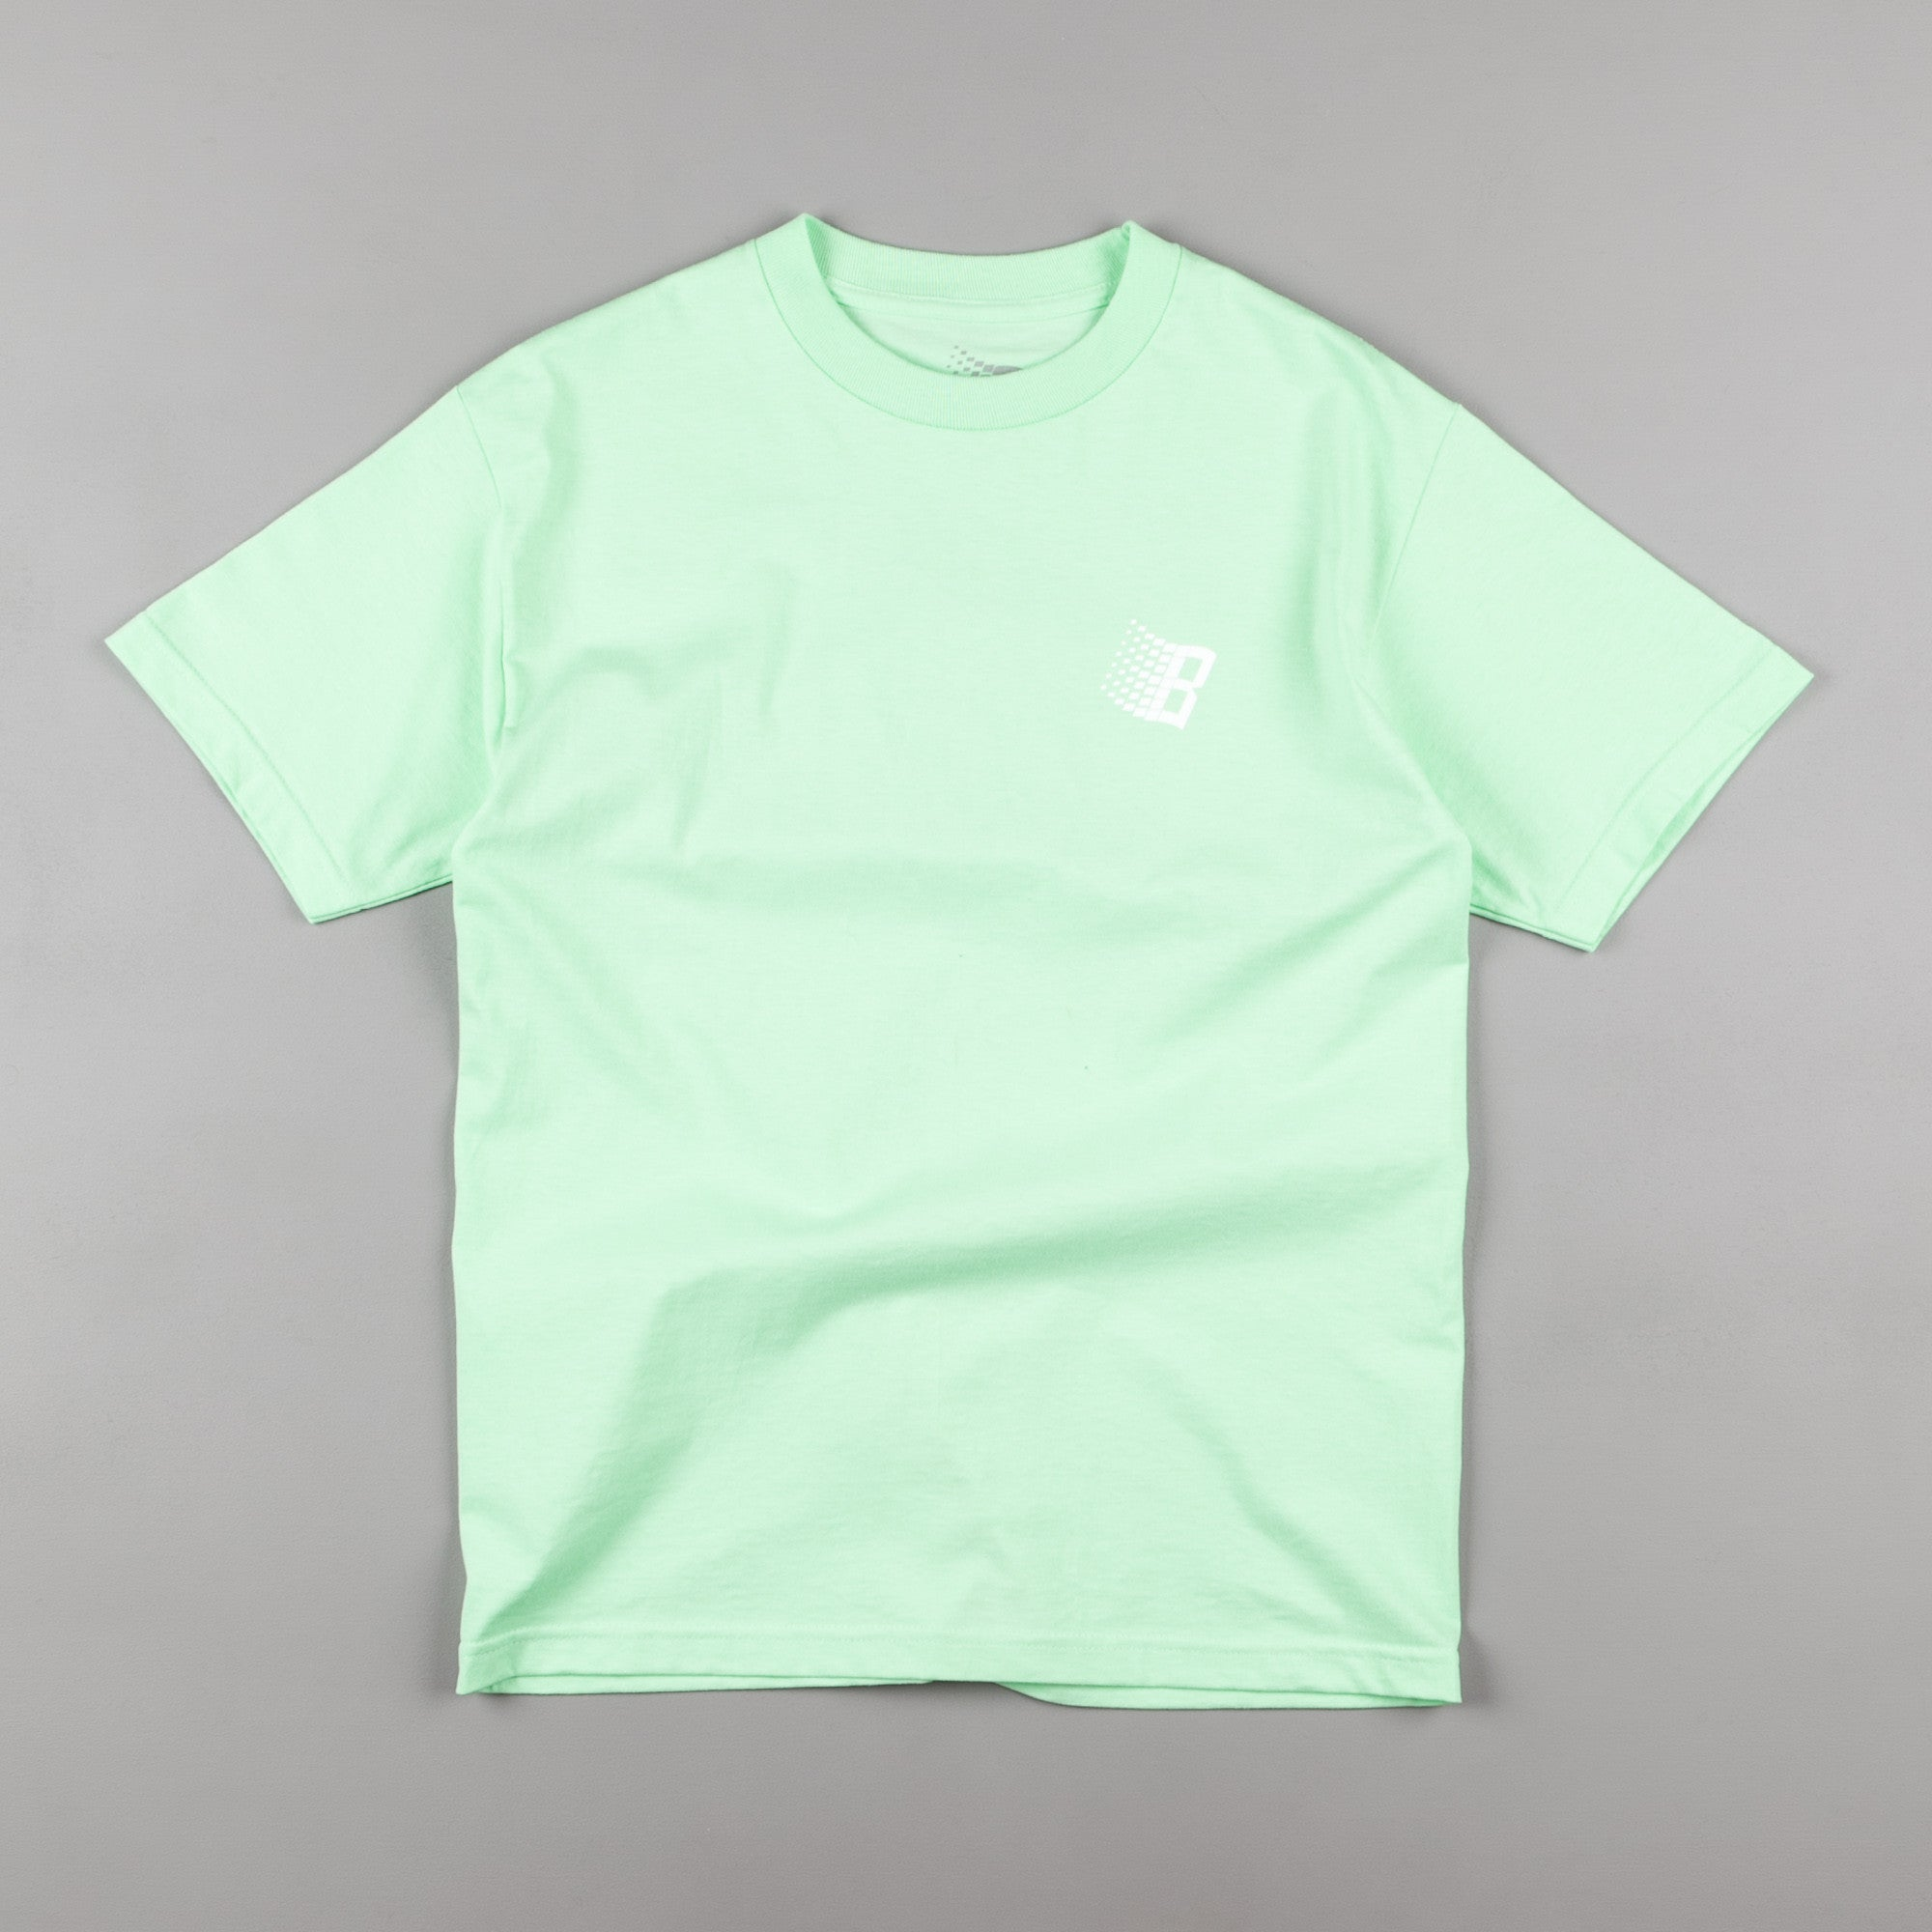 Bronze 56k Bronze Logo T-Shirt - Mint / White